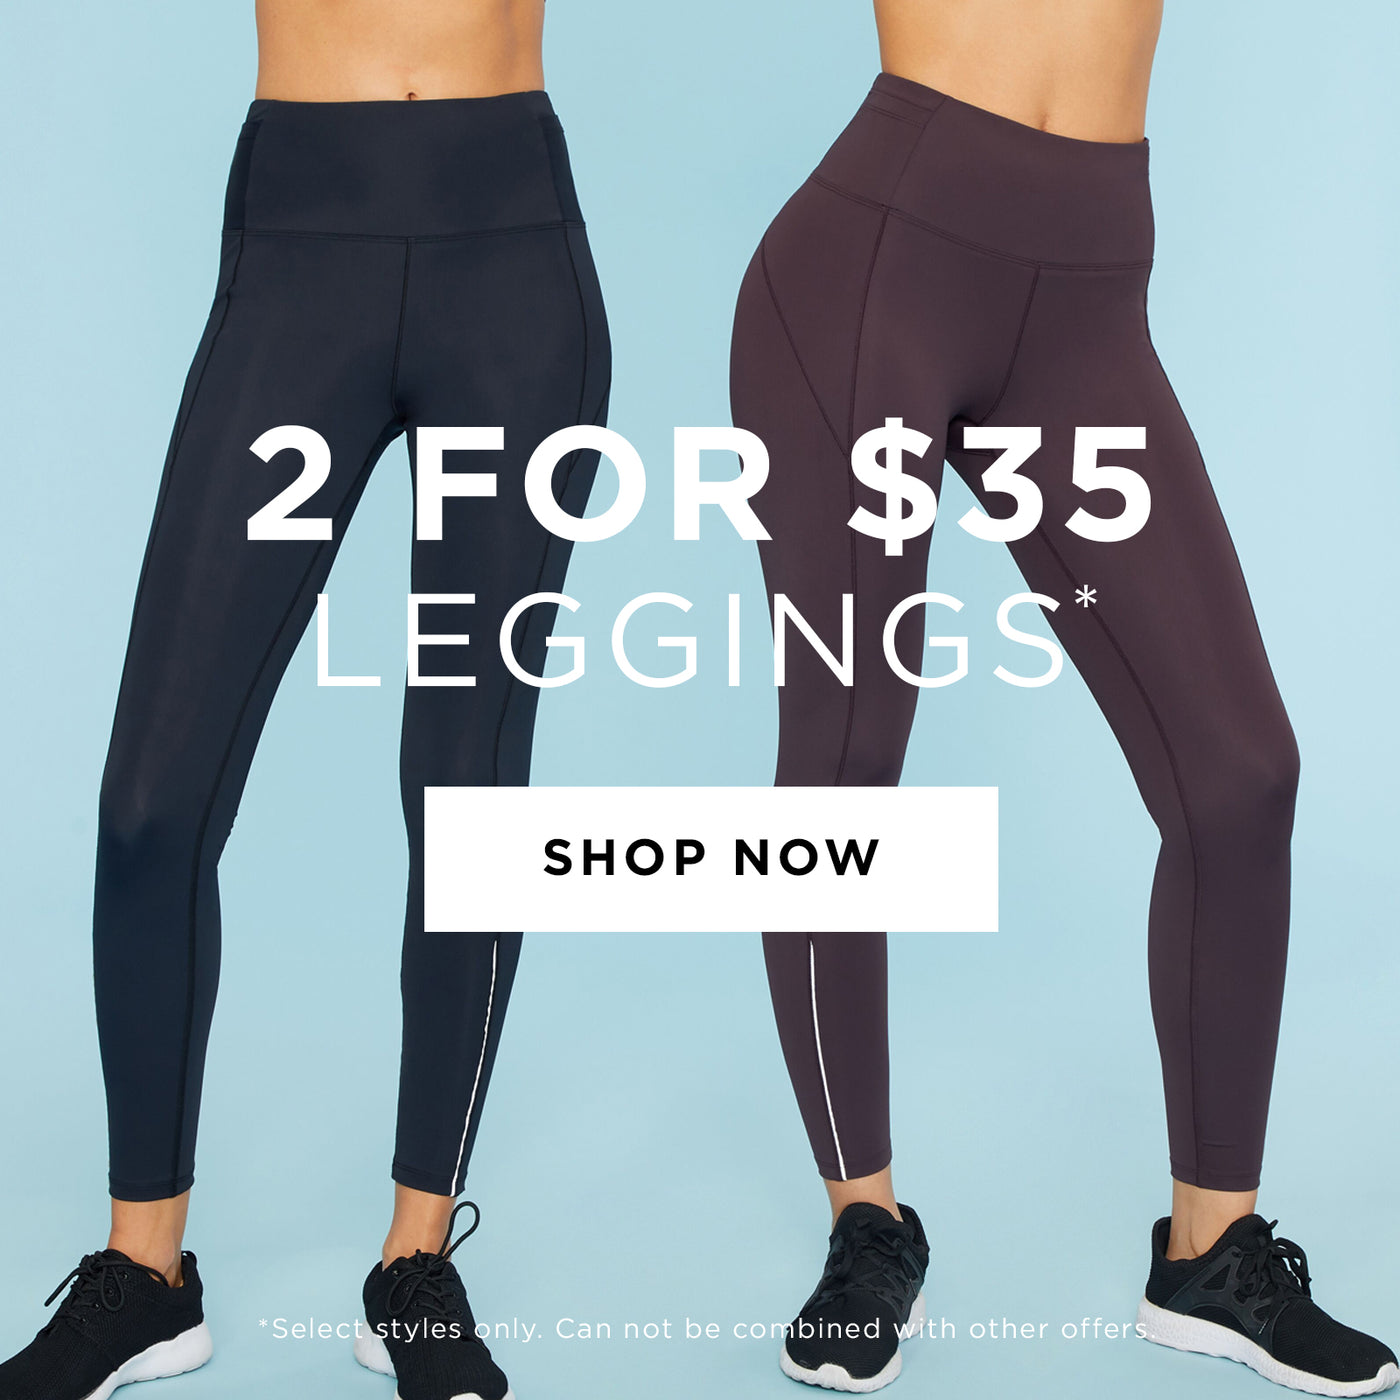 7613a9e54da45 Marika women activewear fitness and workout clothing fit for you jpg  1400x1400 Yoga pants running athletic